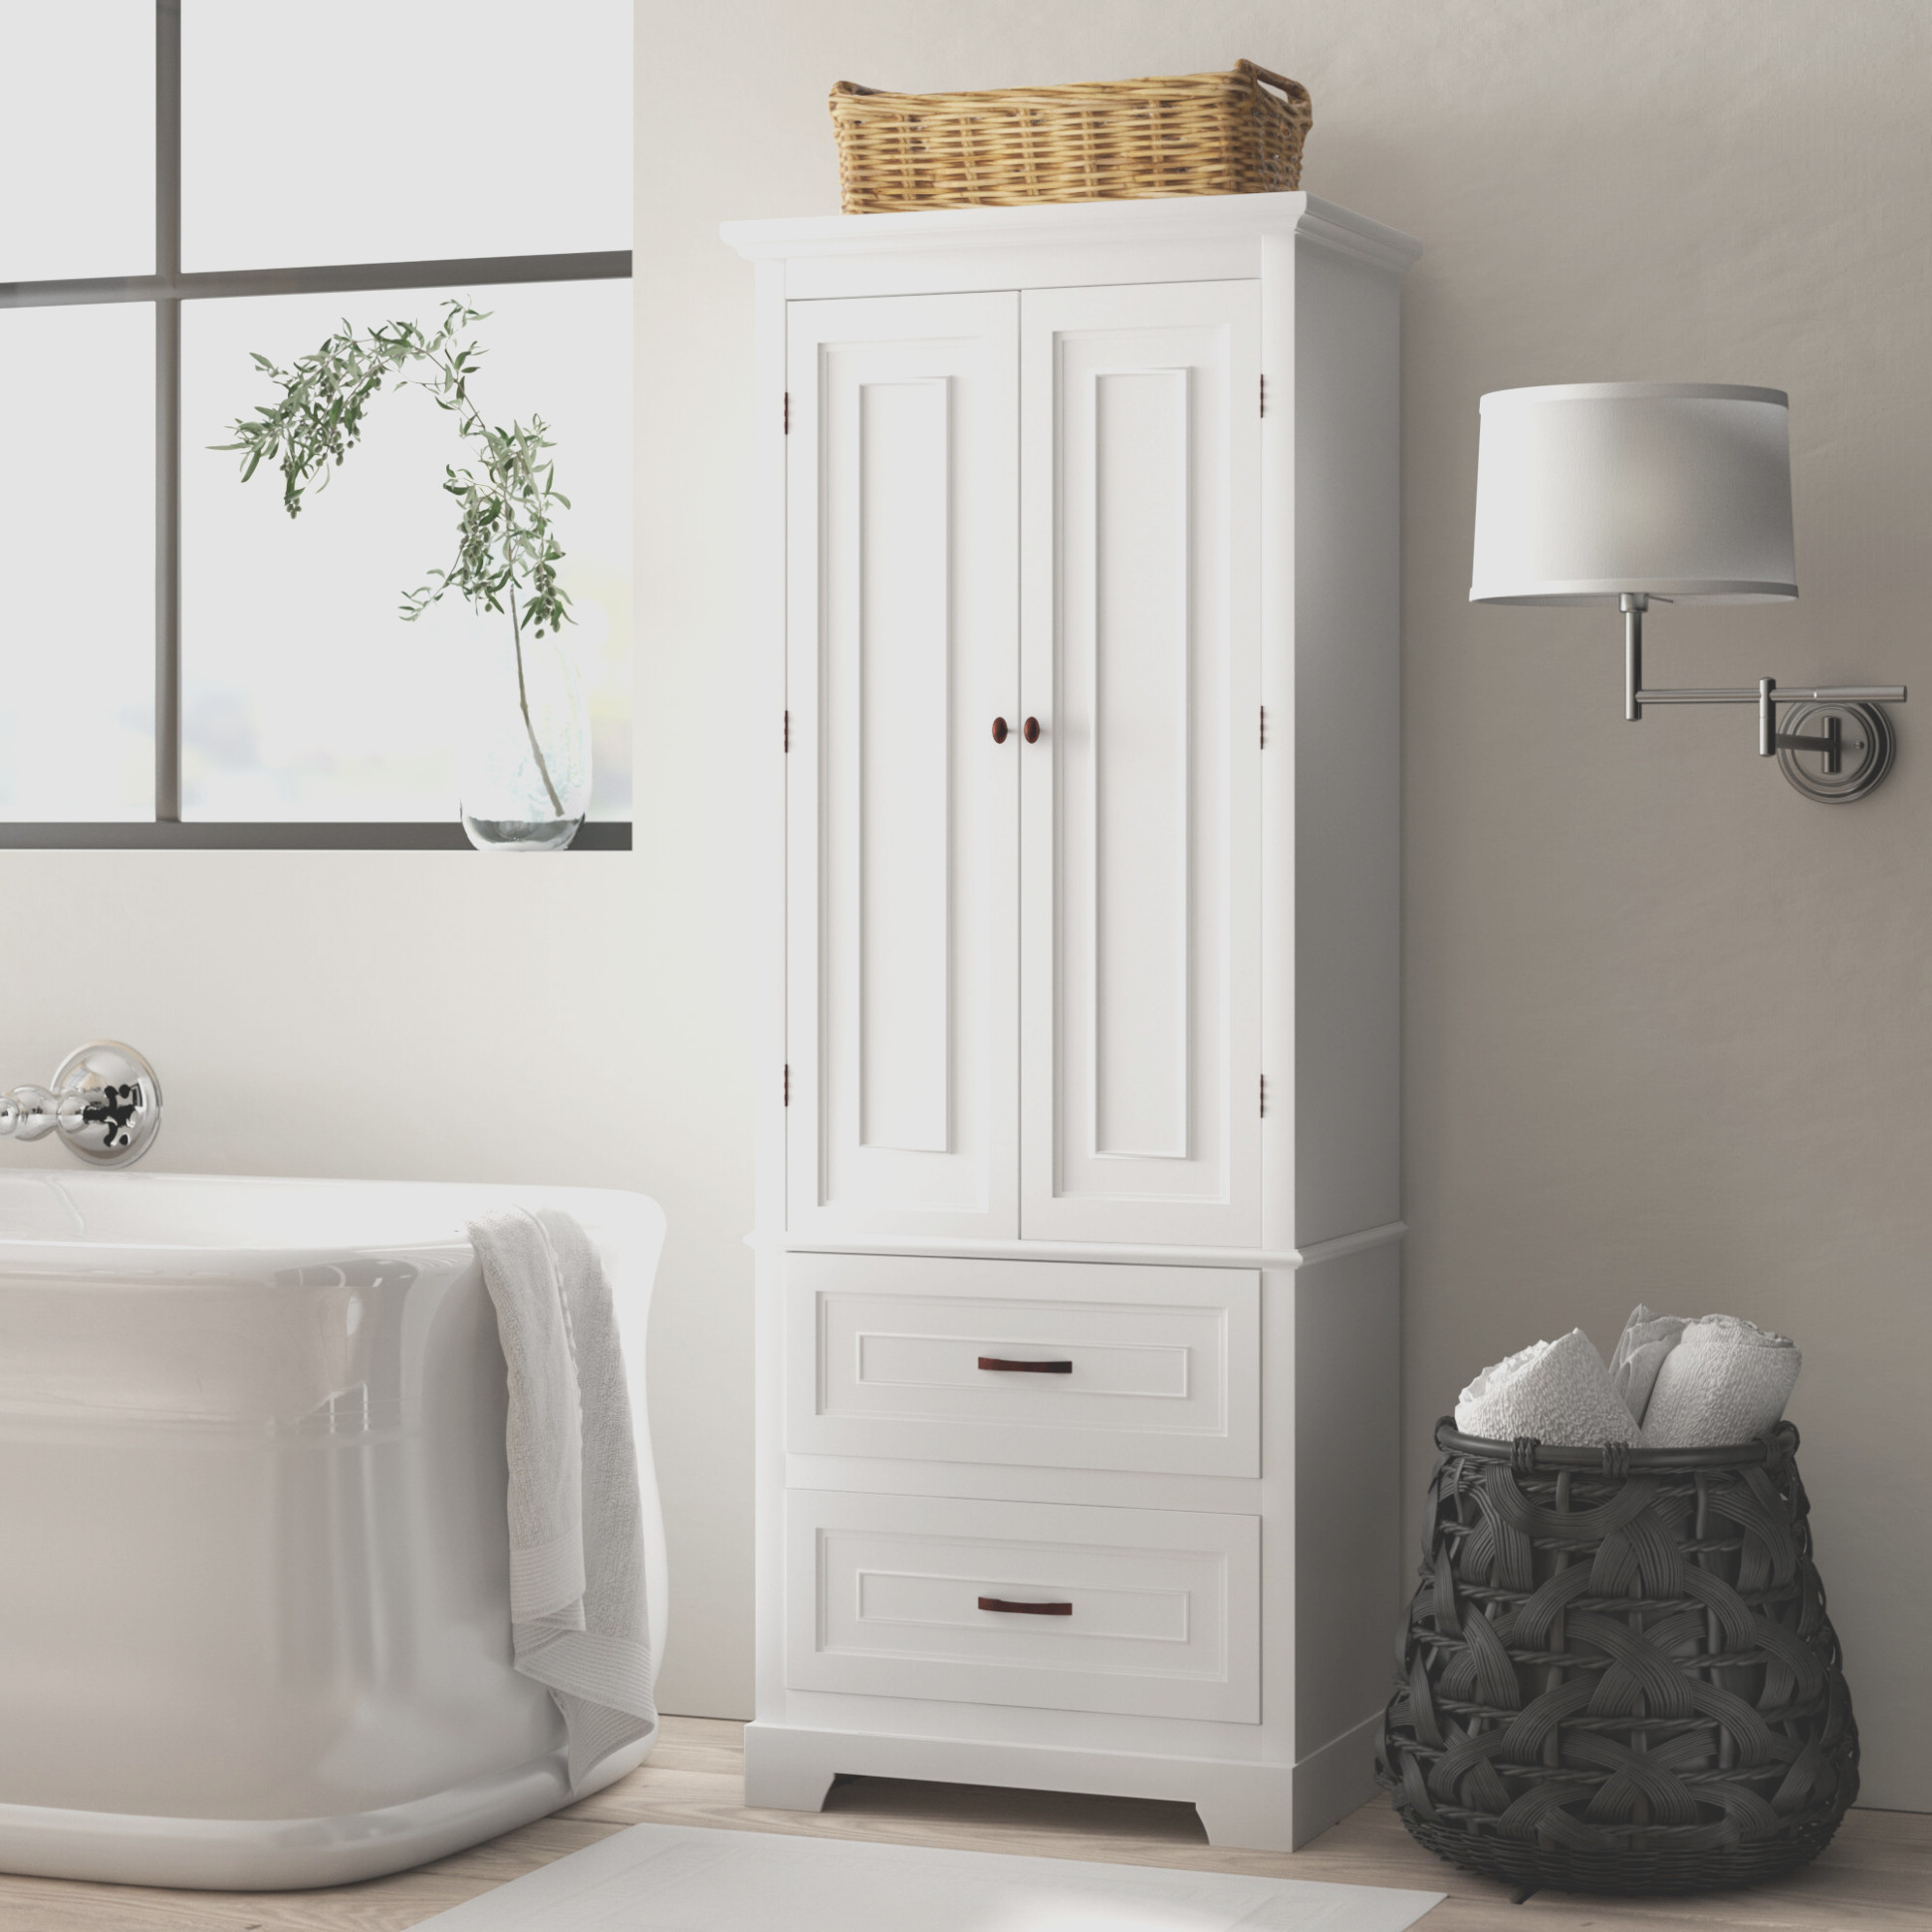 Tall Free Standing Linen Cabinets